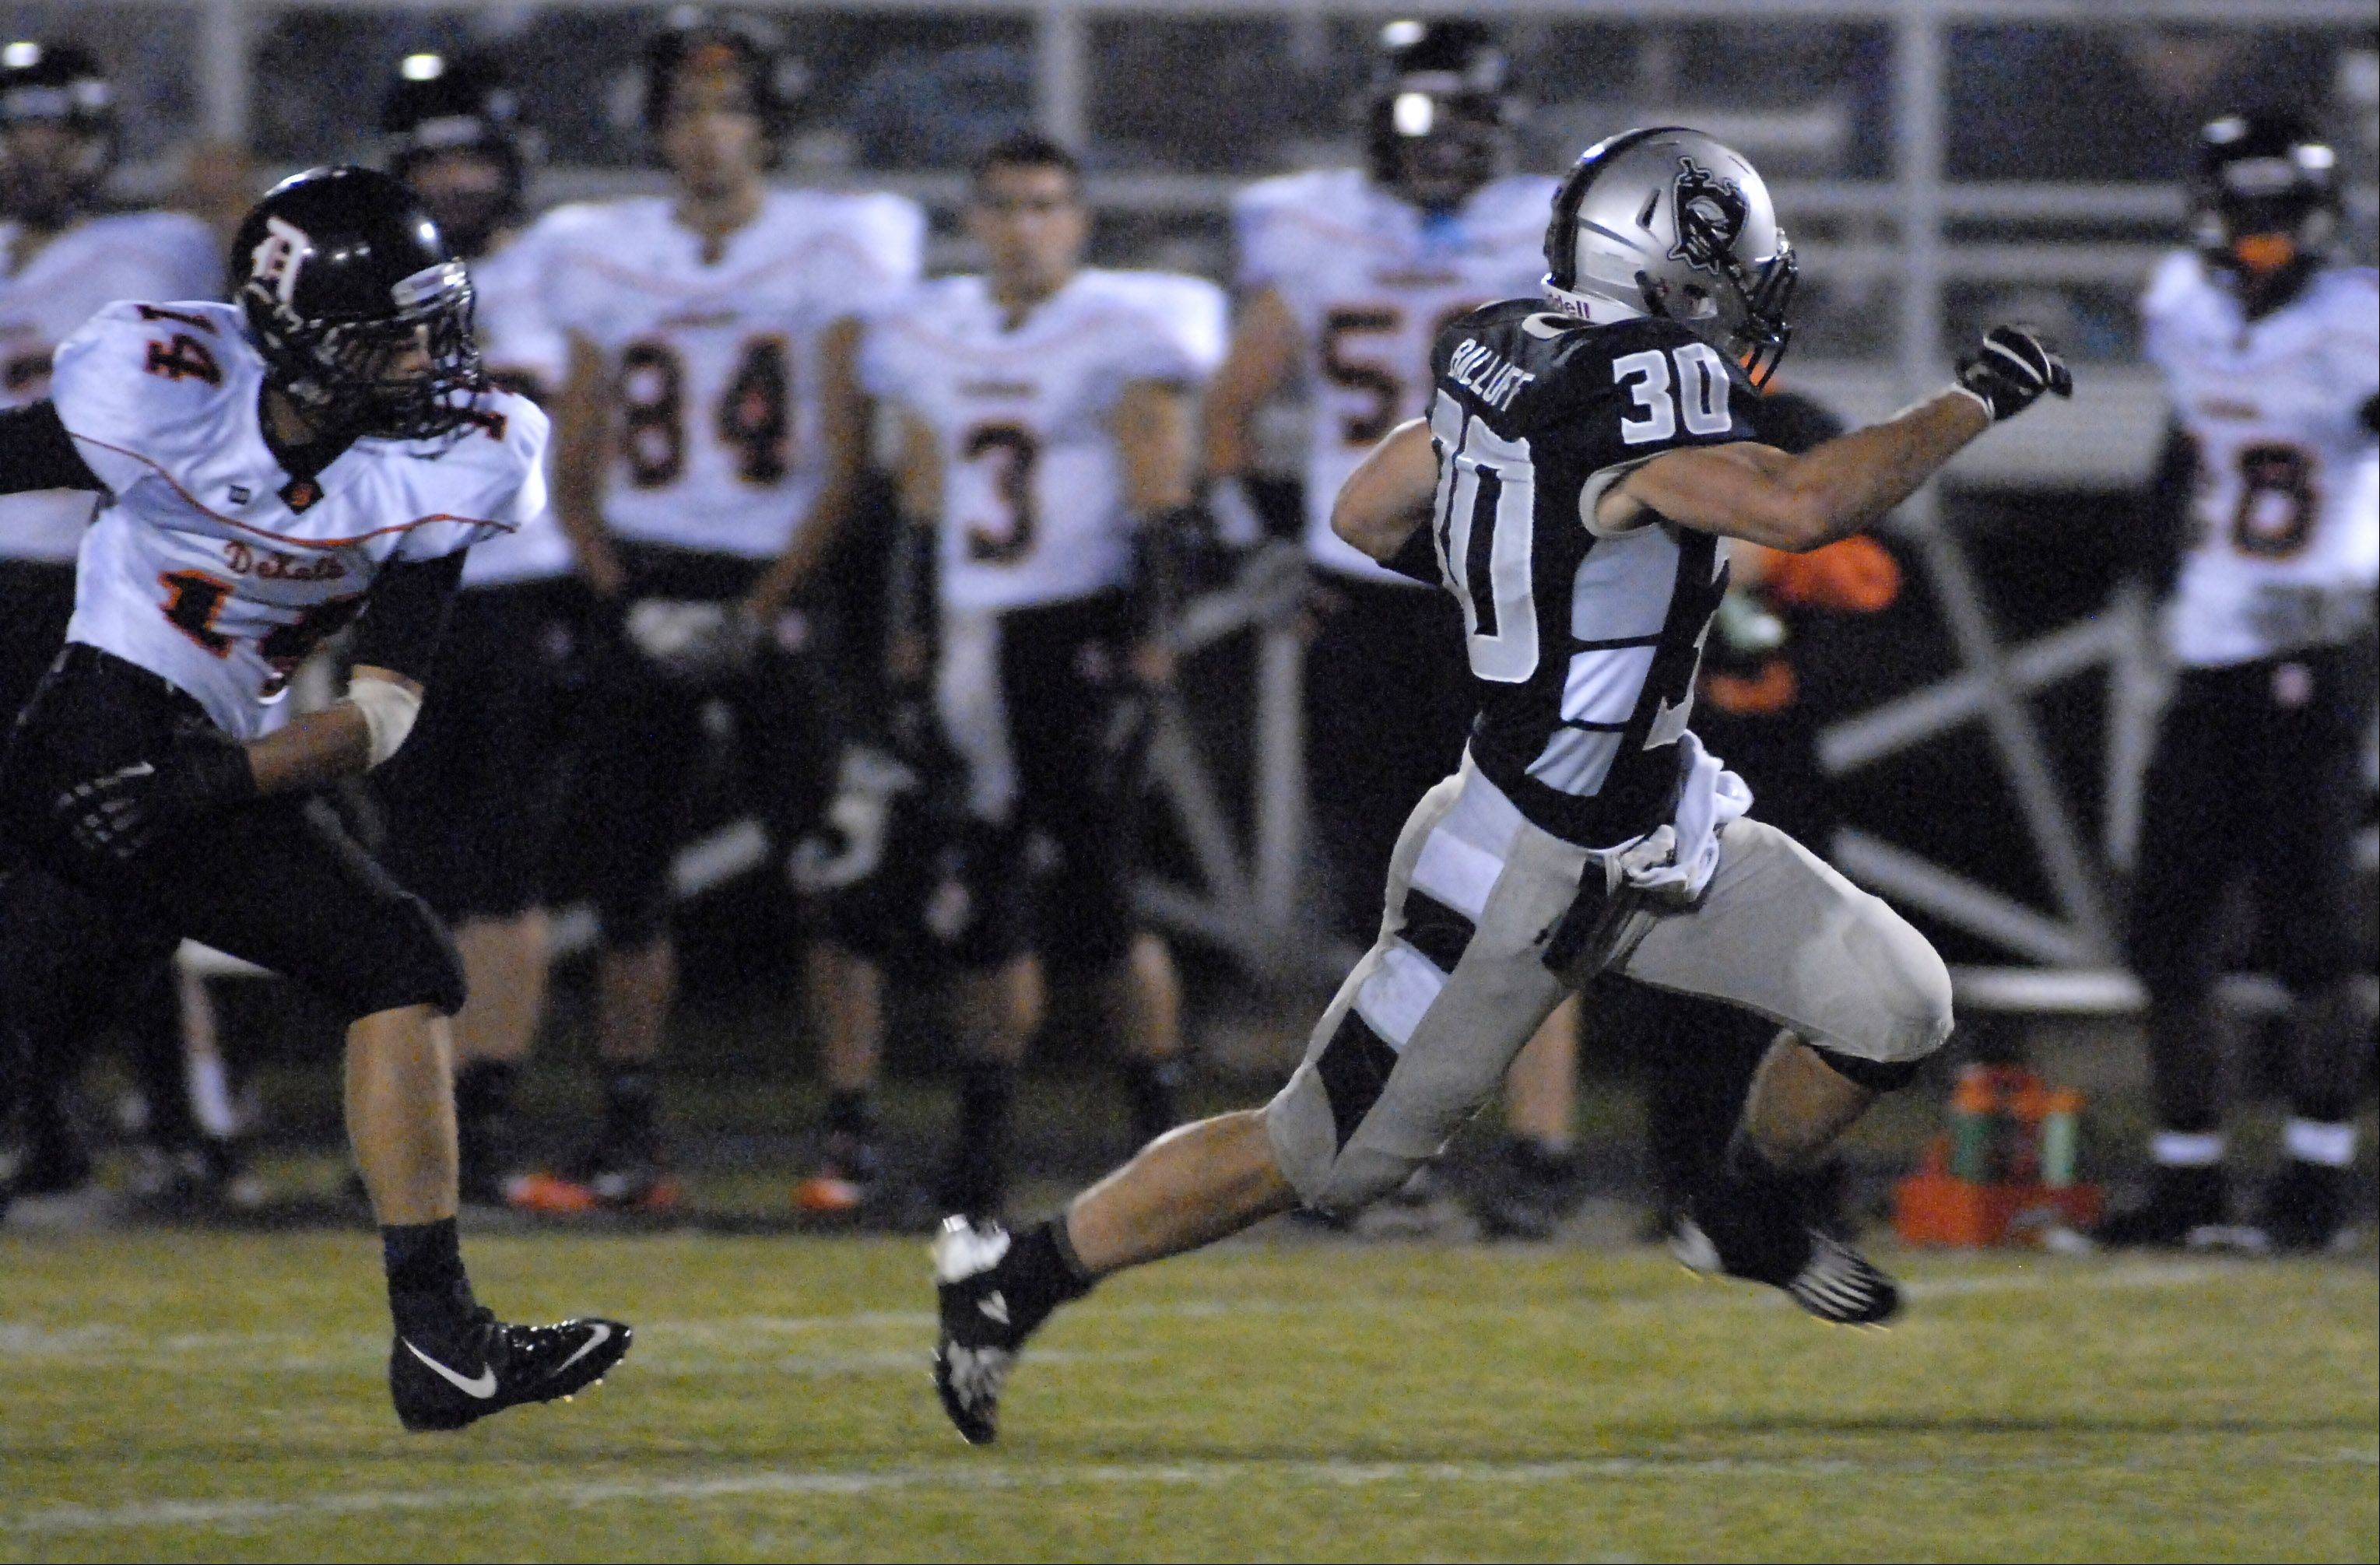 Laura Stoecker/lstoecker@dailyherald.com Kaneland's Jesse Balluff shakes off DeKalb's Jake Young in the first quarter as he makes his way to the end zone on Friday, September 28.